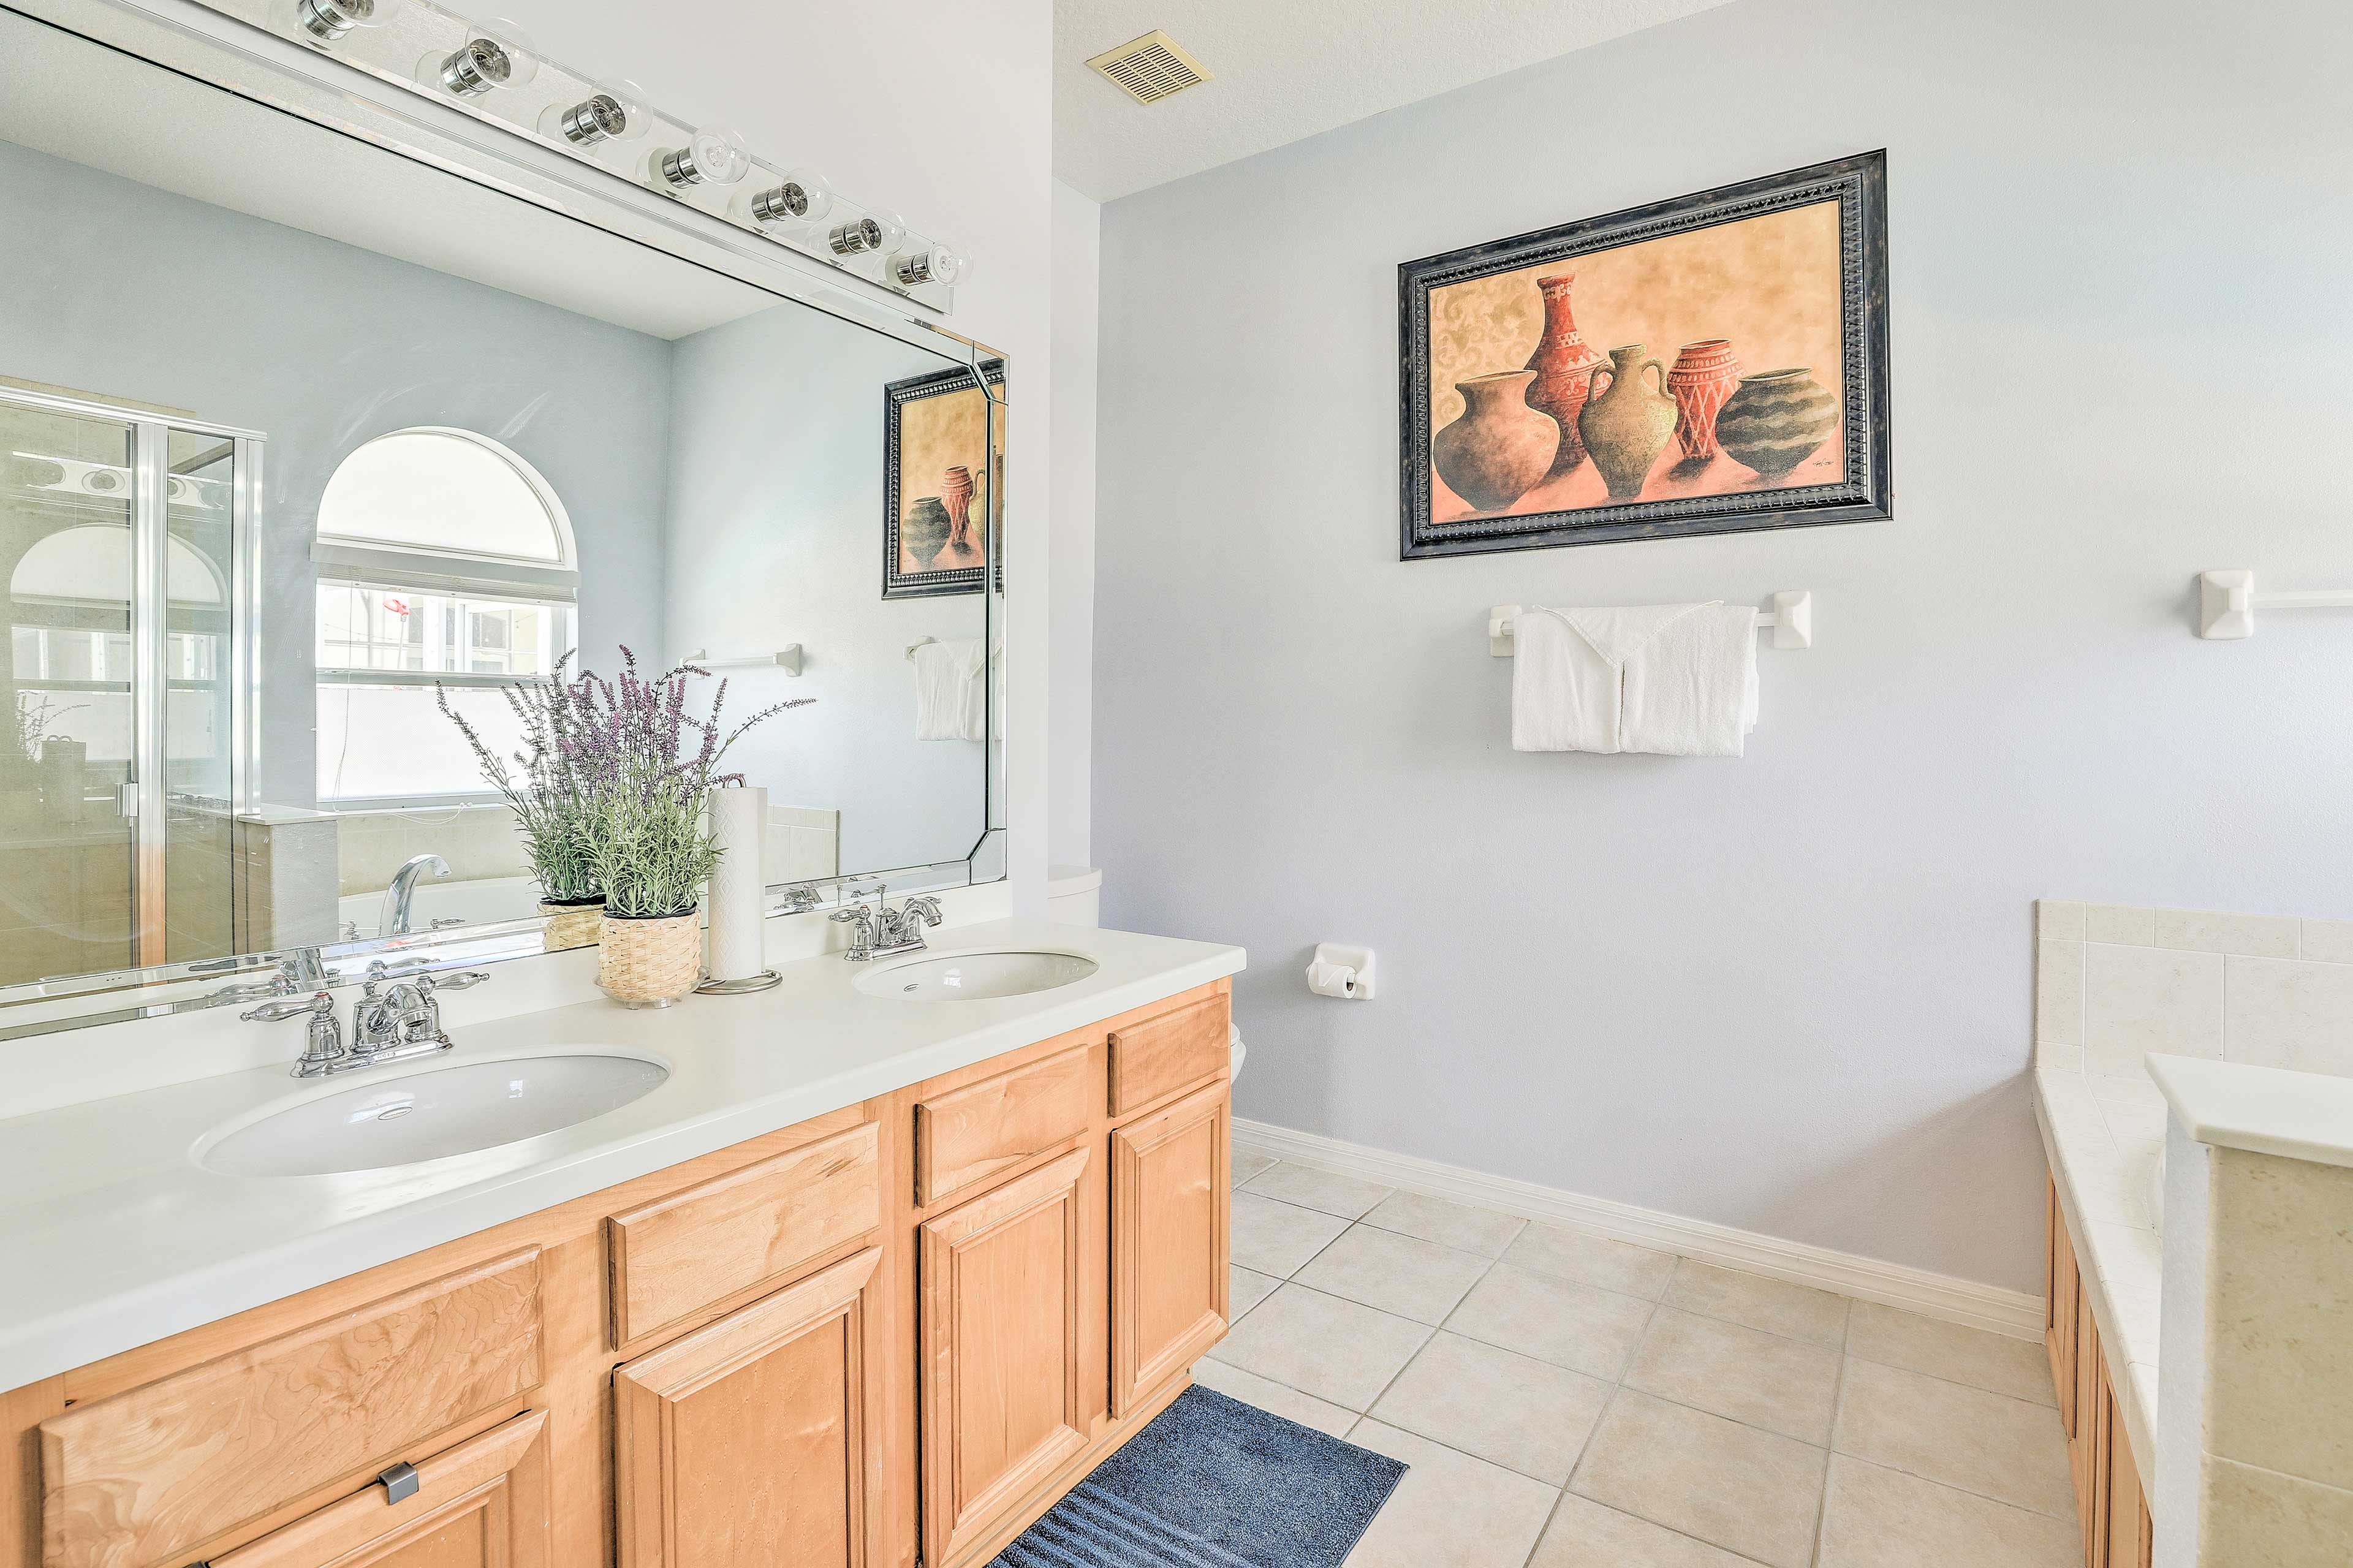 The dual sinks makes getting ready easy!